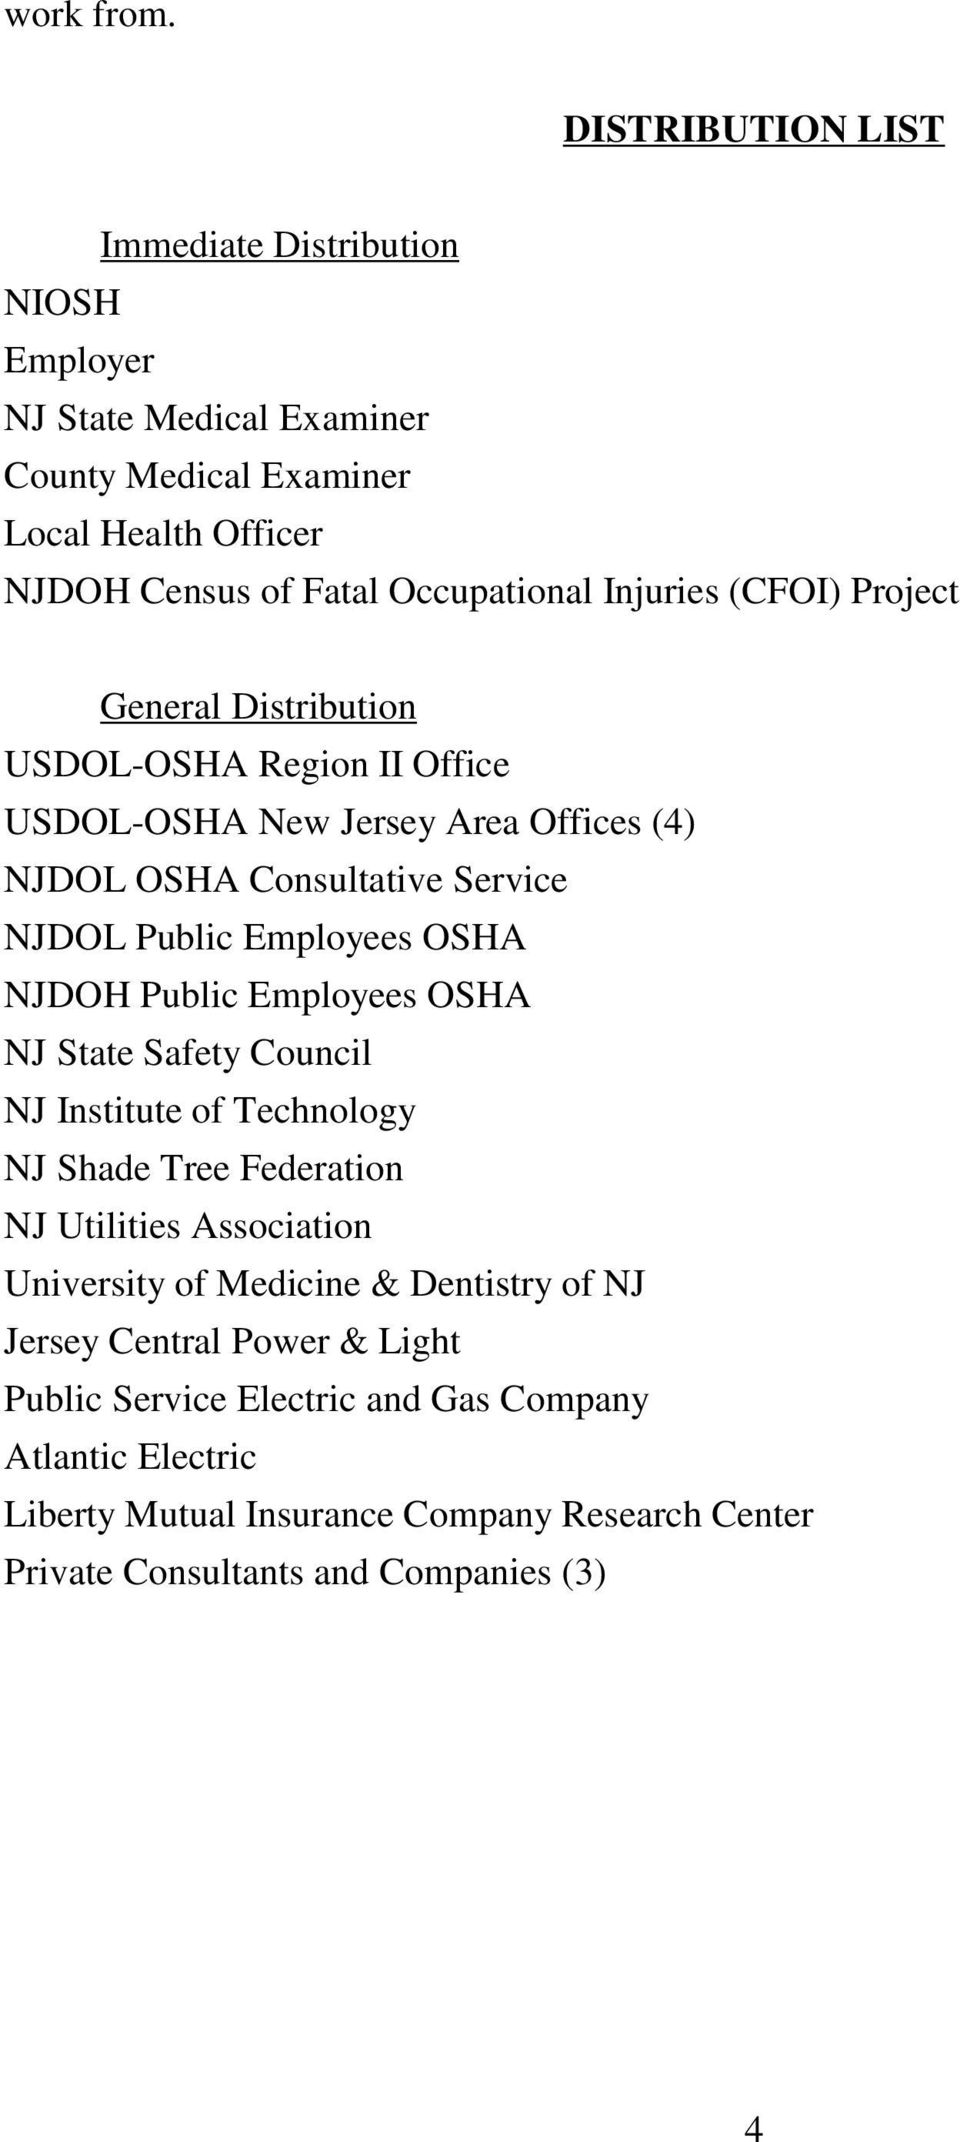 (CFOI) Project General Distribution USDOL-OSHA Region II Office USDOL-OSHA New Jersey Area Offices (4) NJDOL OSHA Consultative Service NJDOL Public Employees OSHA NJDOH